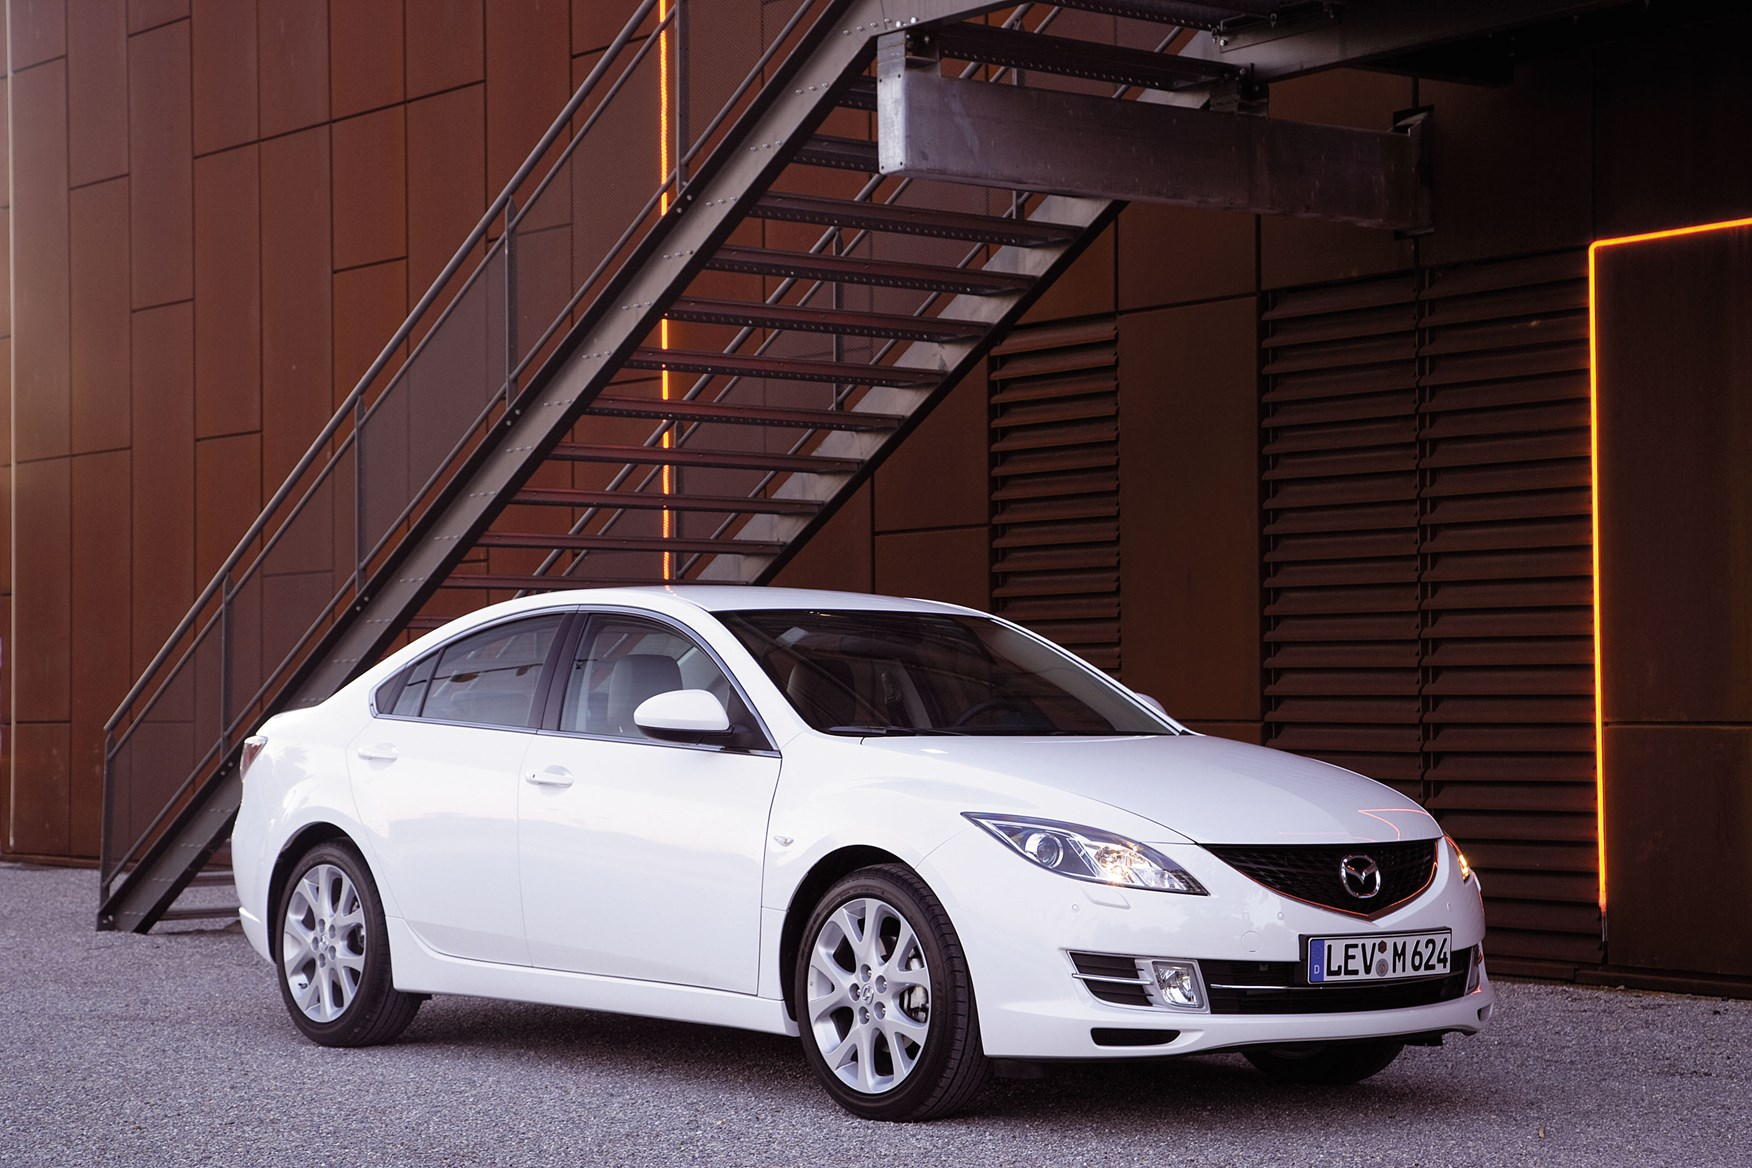 https://parkers-images.bauersecure.com/gallery-image/pagefiles/202853/static-exterior/1752x1168/mazda6_sdn_still12.jpg